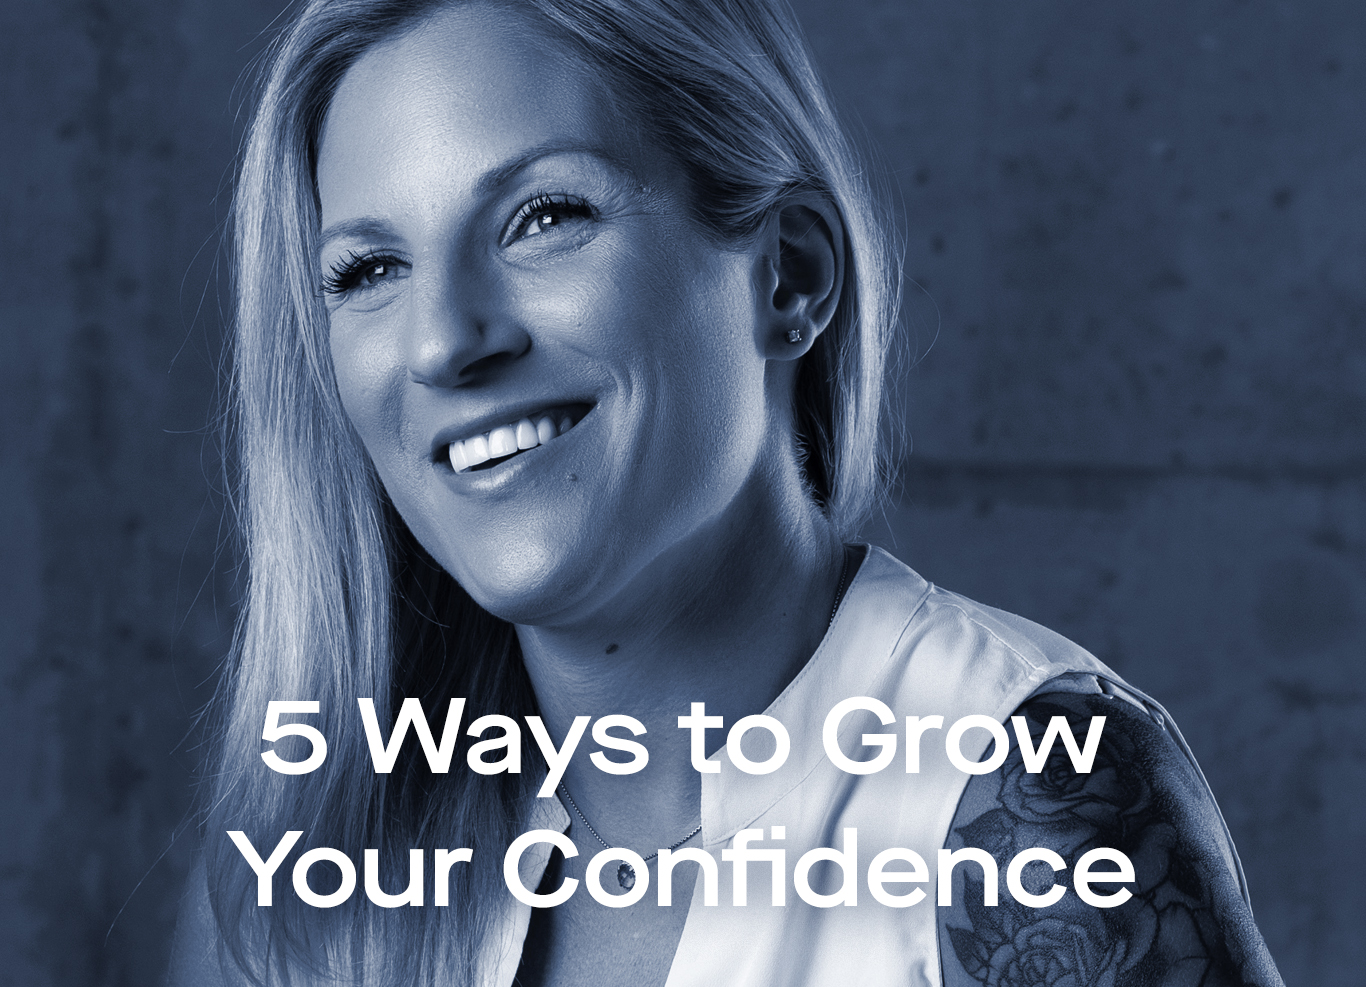 5 ways to grow your confidence